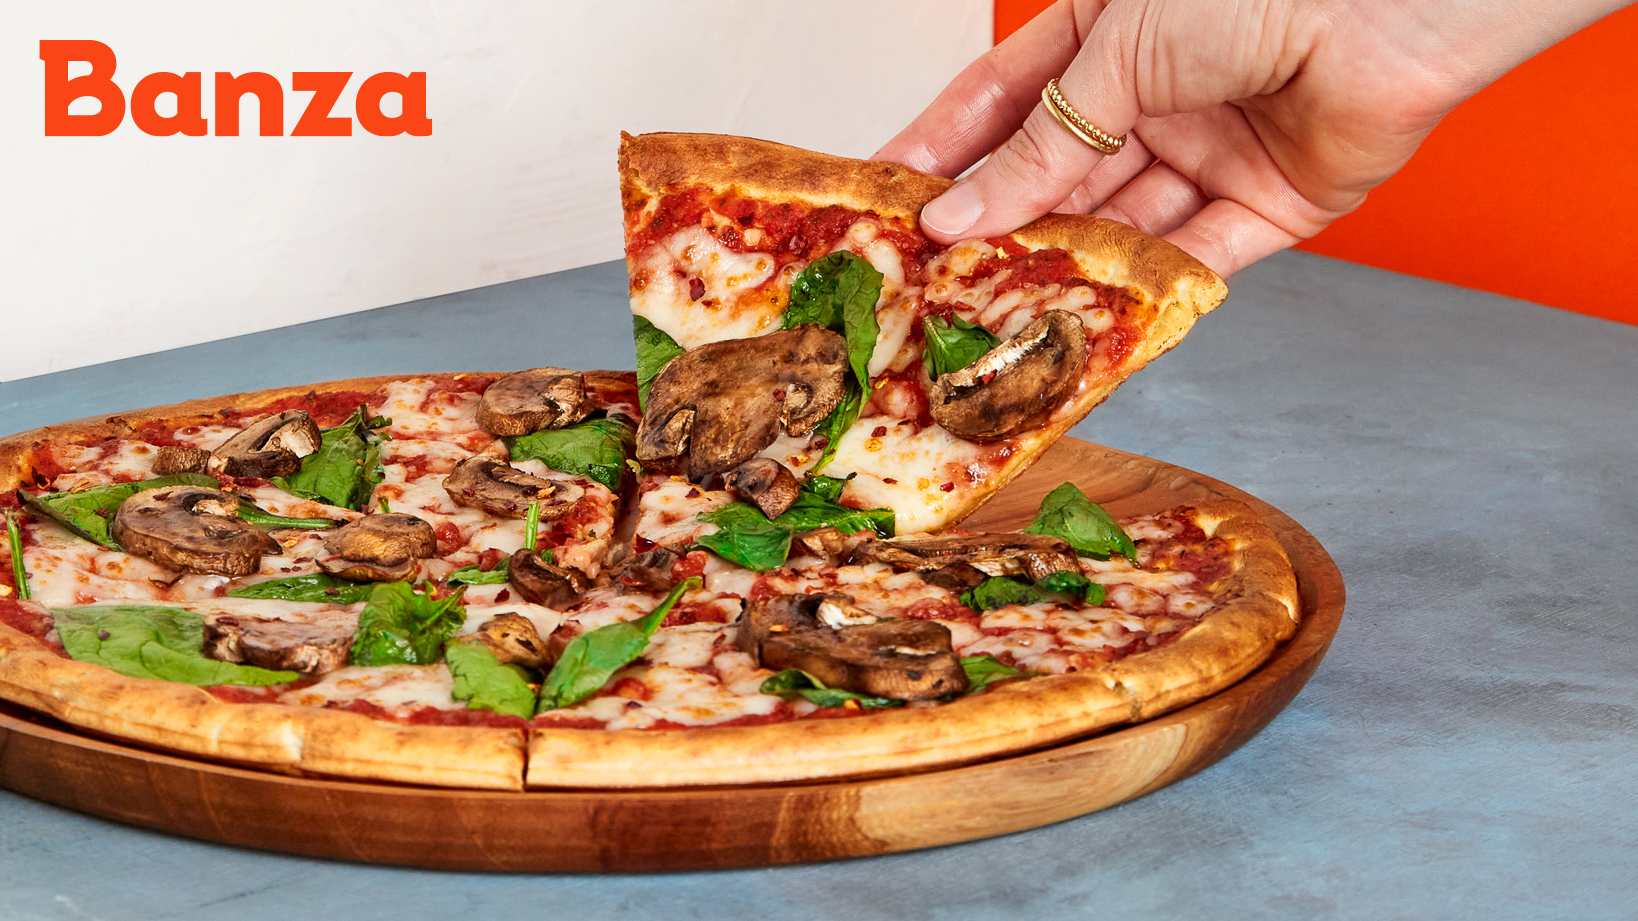 Oath Pizza now has gluten-free, Banza Chickpea Crust available on any craft or build your own pizza